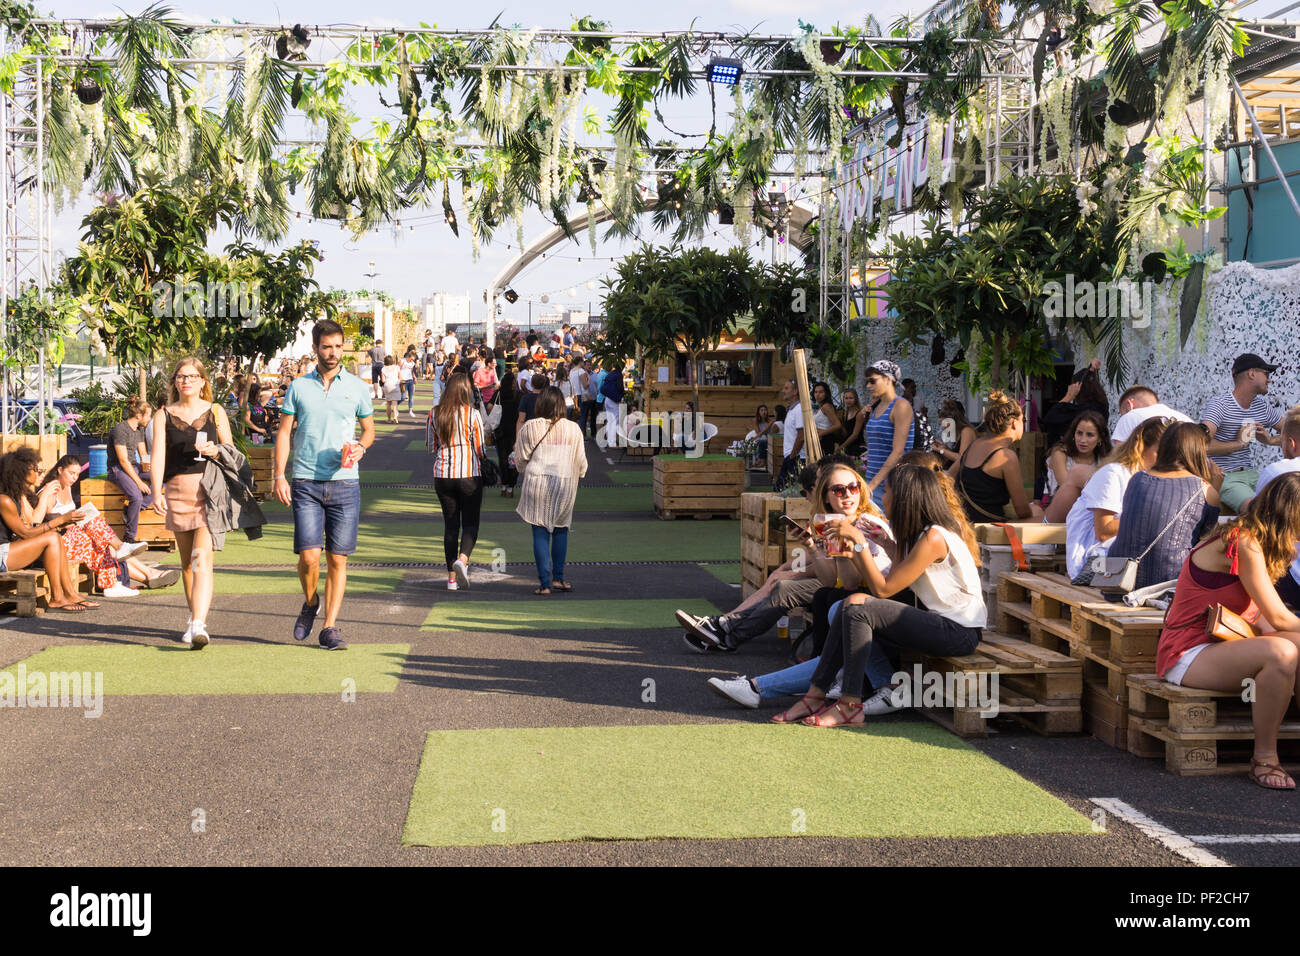 Jardin Suspendu High Resolution Stock Photography And Images Alamy